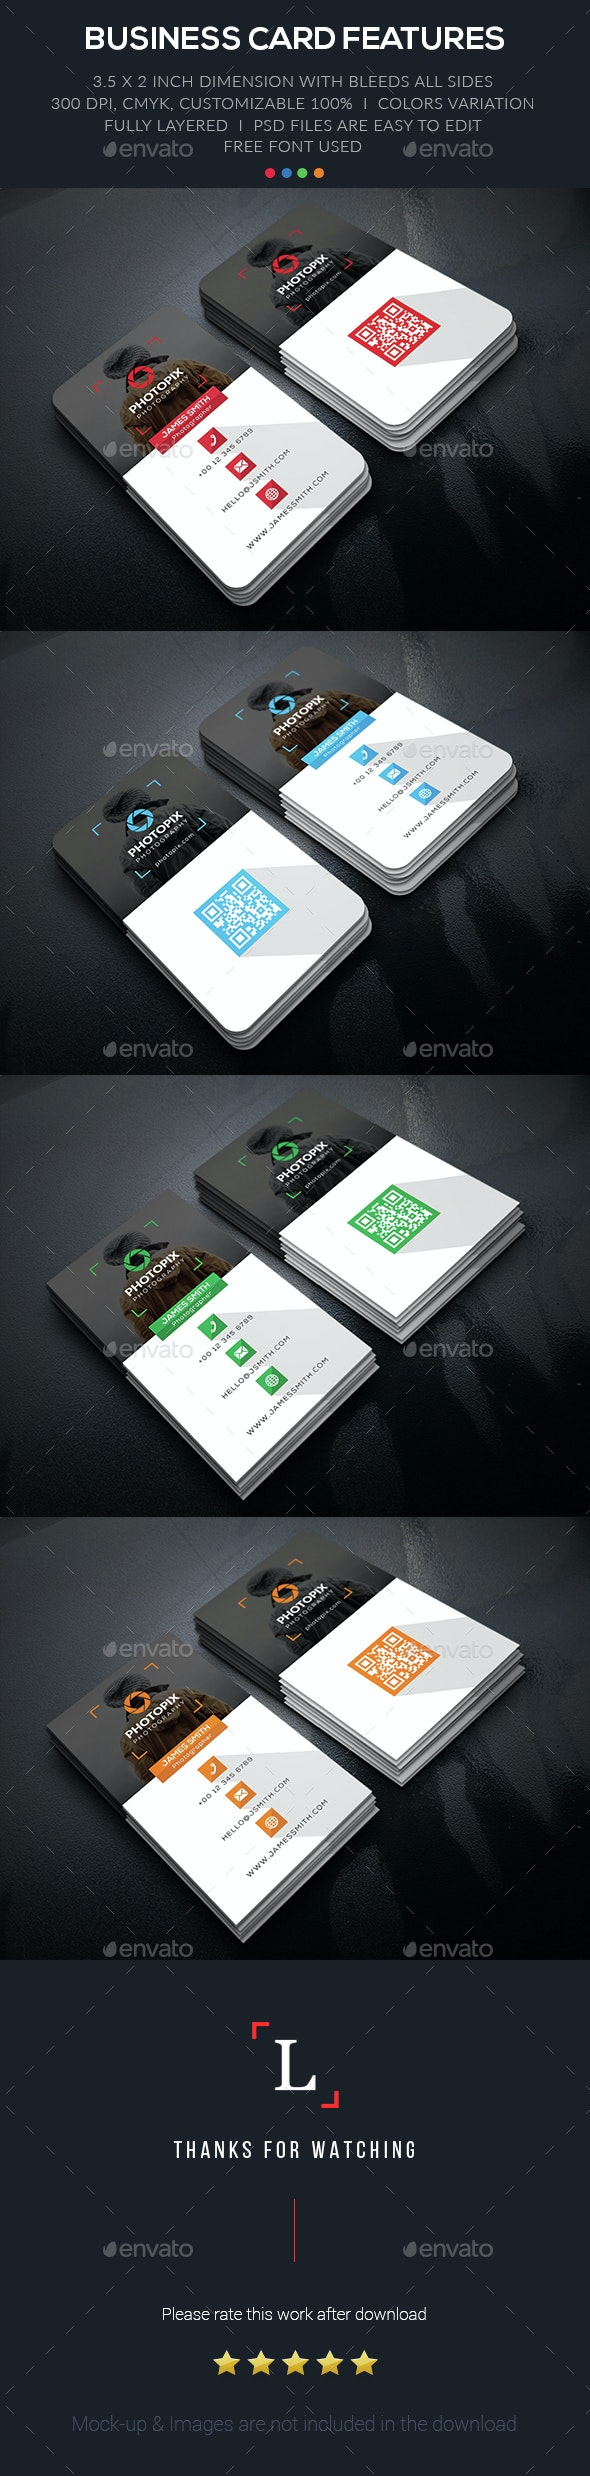 Shadow Photography Business Card - Business Cards Print Templates